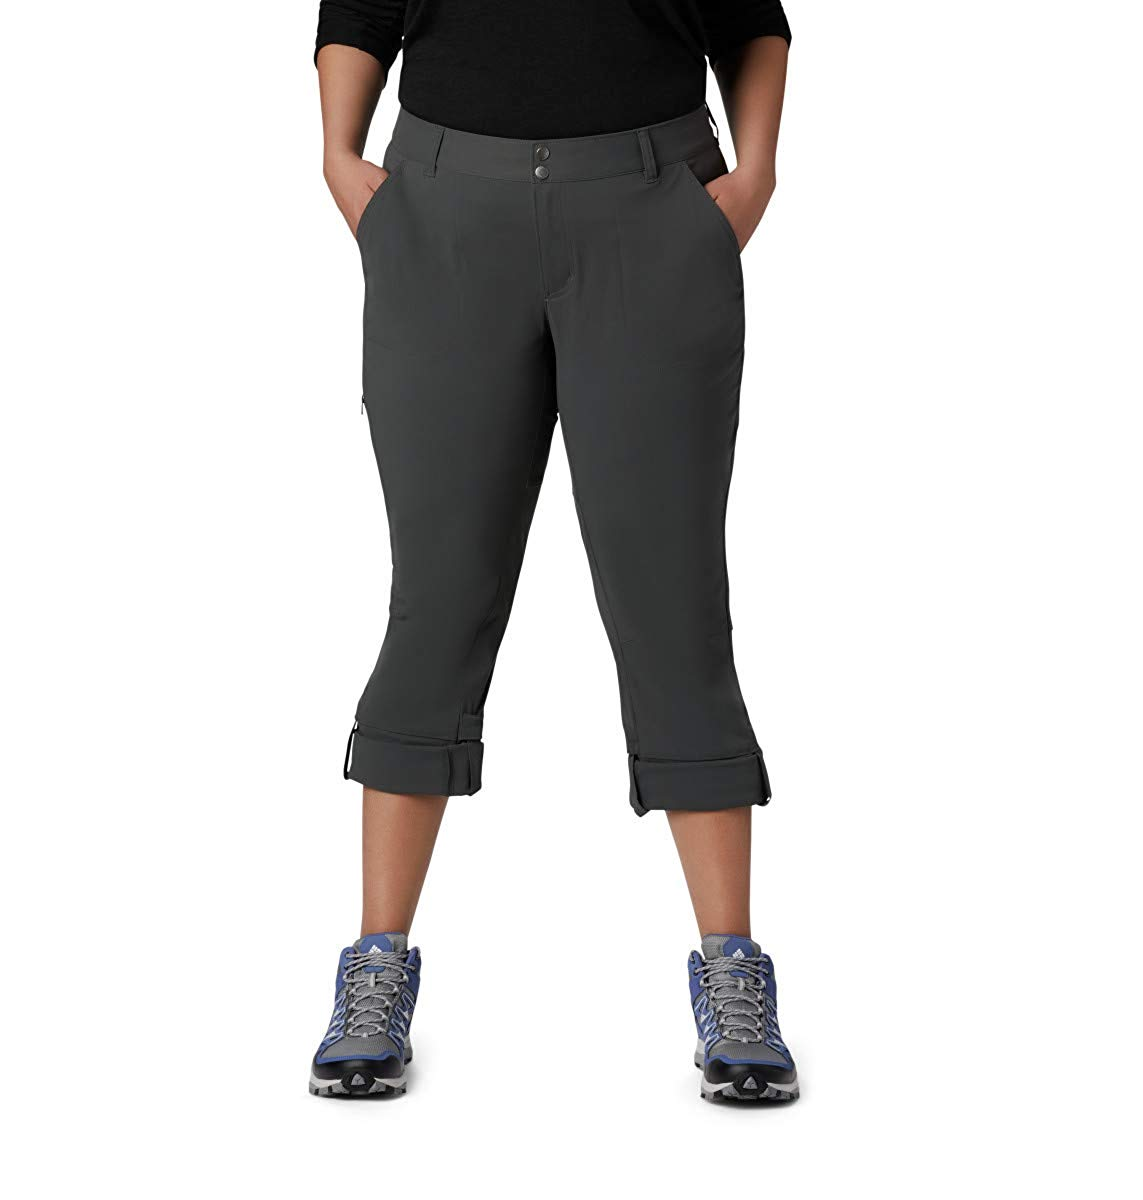 Columbia Women's Saturday Trail Pant capris